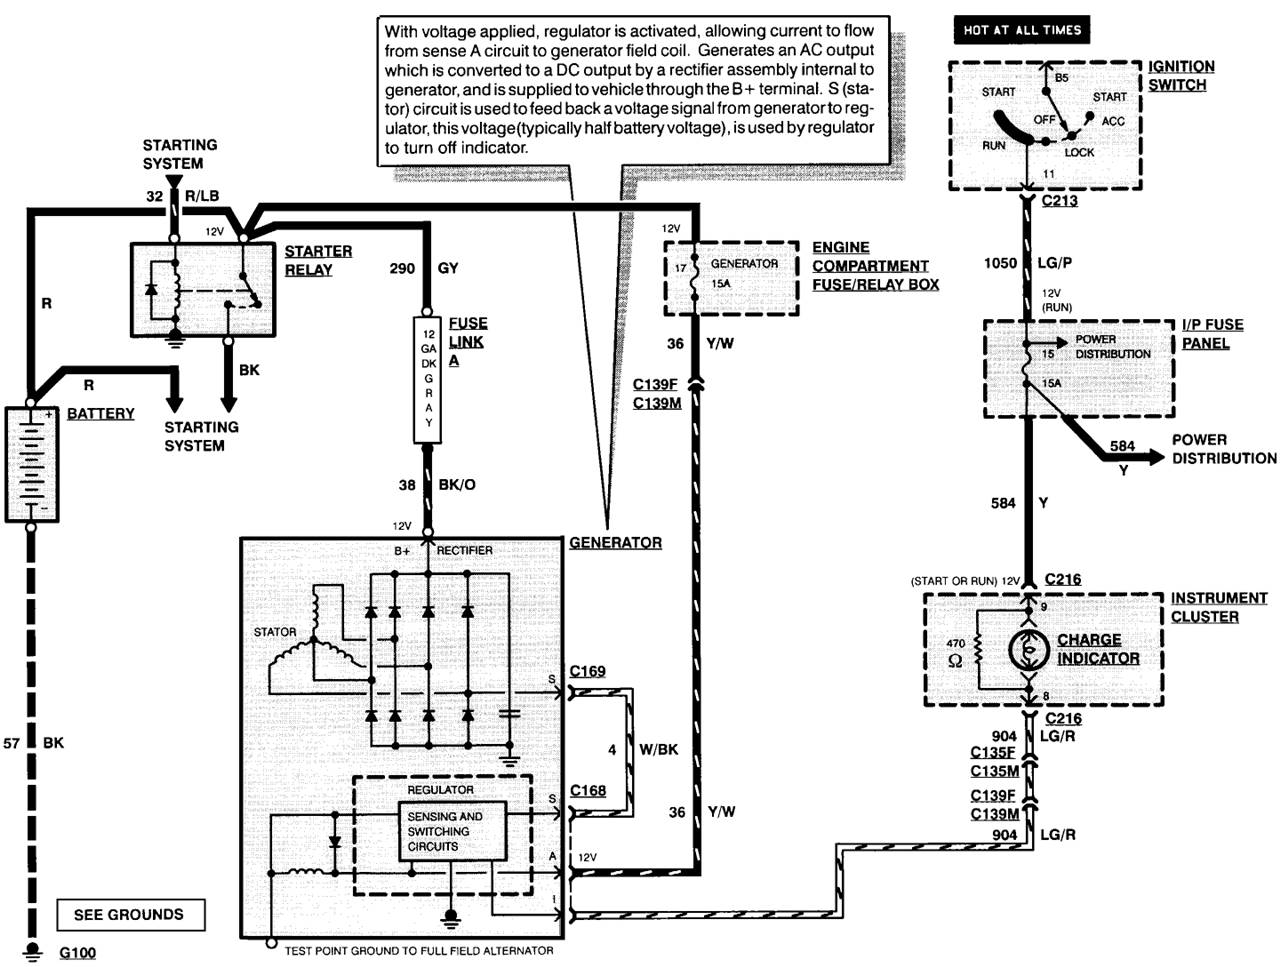 hight resolution of ford f350 alternator wiring diagram wiring diagram origin rh 20 4 darklifezine de 2008 f350 wiring